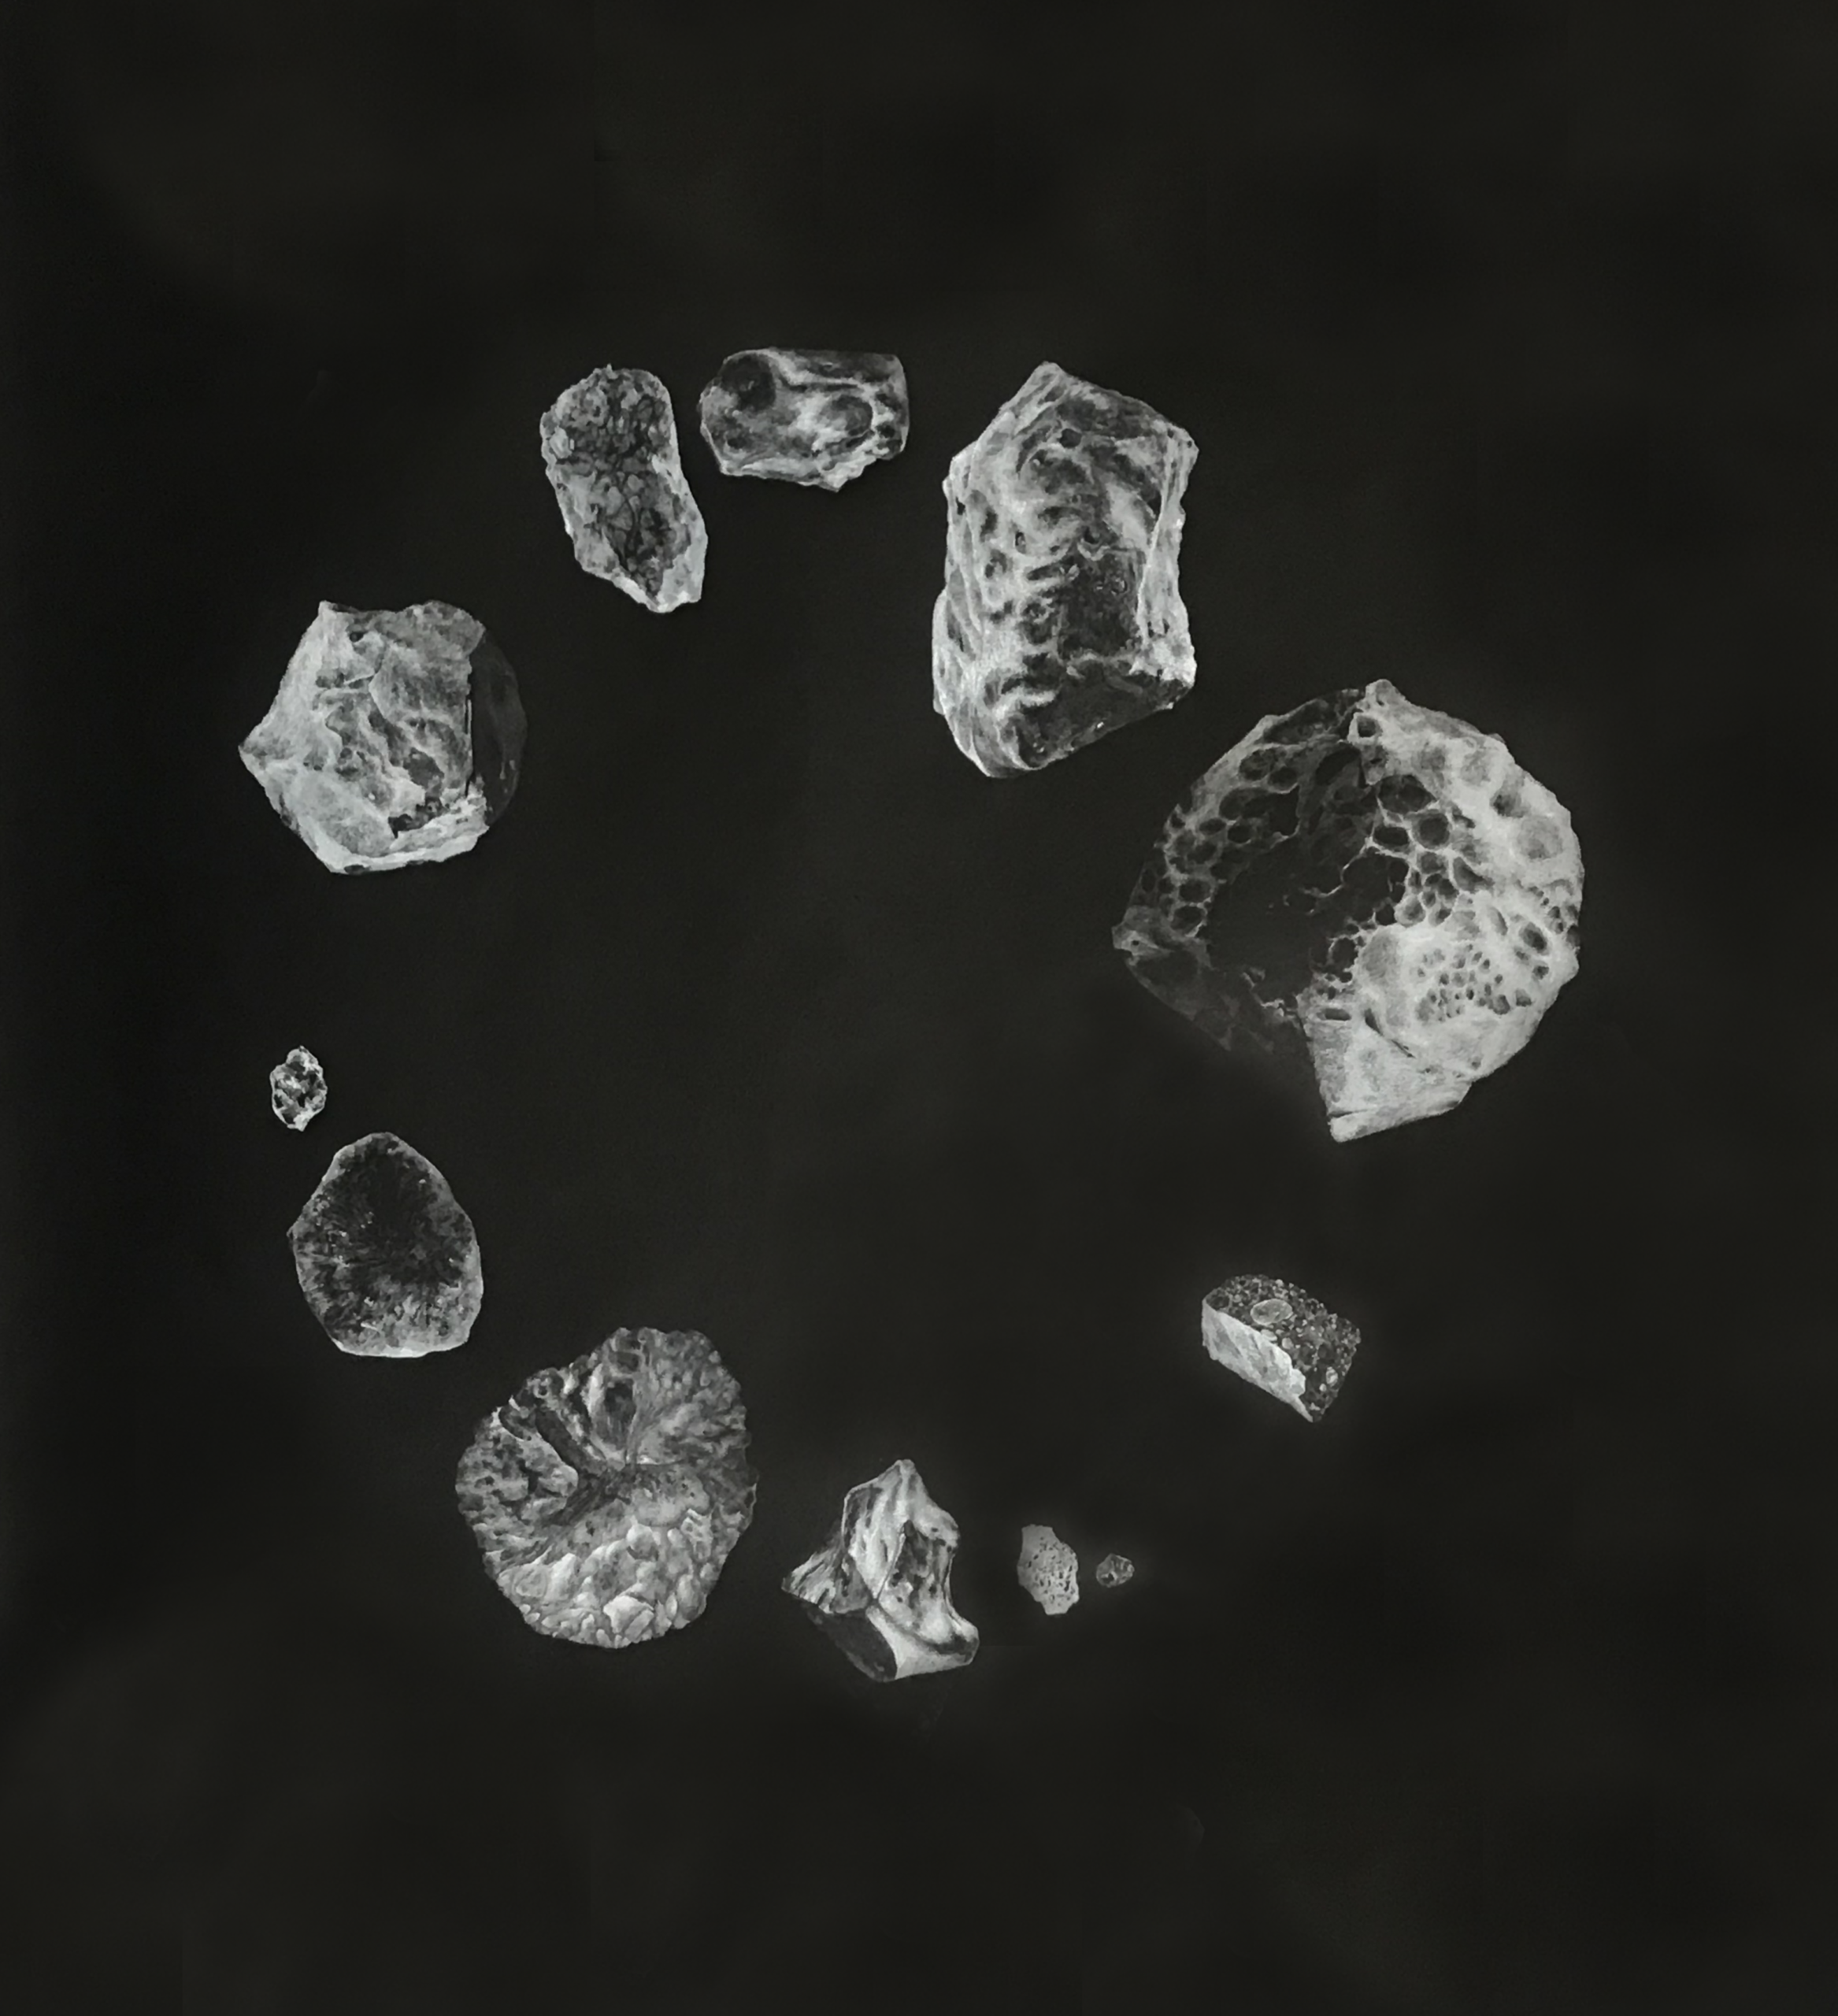 black paper with a drawing in white of a circle of 12 meteorites that have landed in the UK